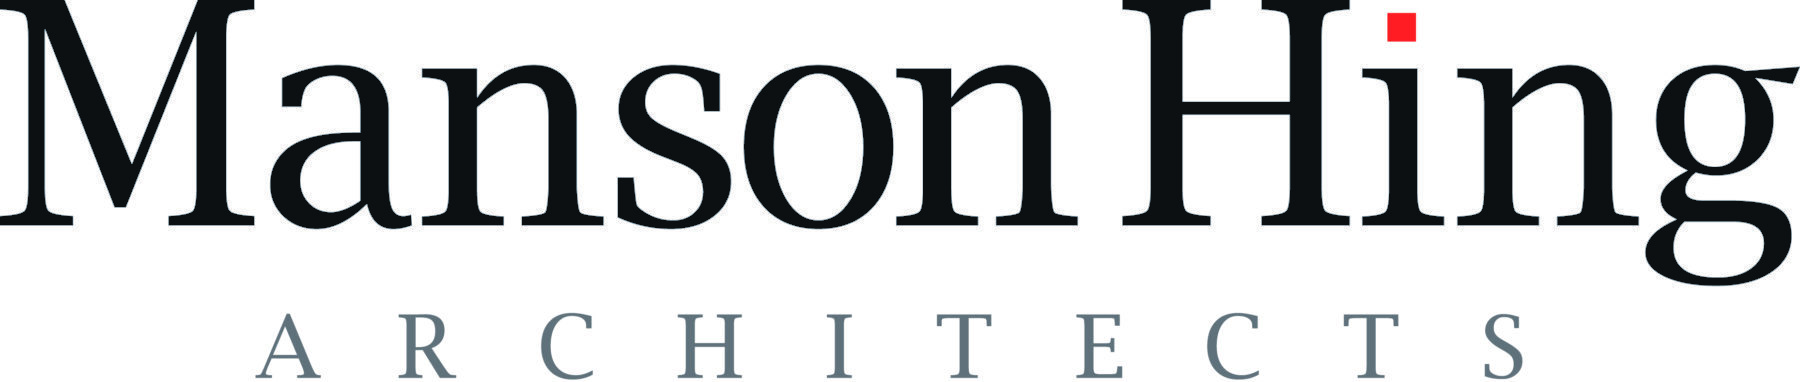 Manson-Hing Architects Inc.